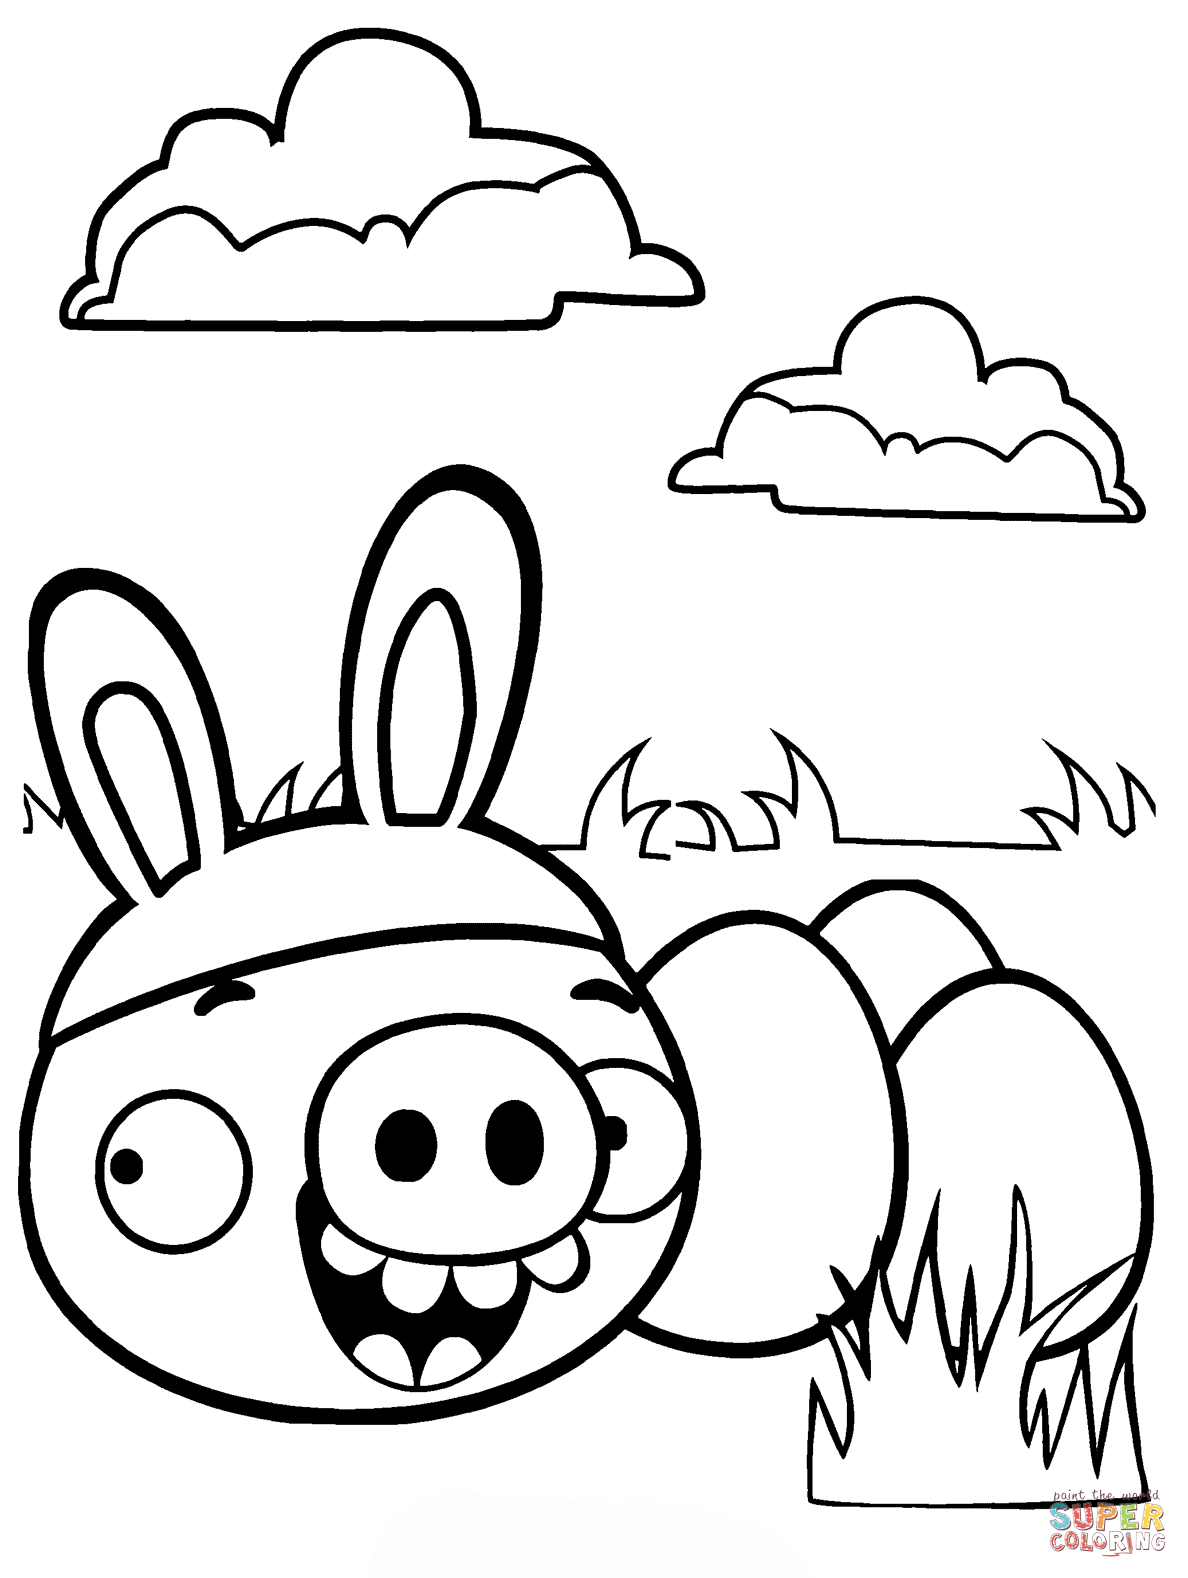 Minion Pig Stealing Easter Eggs Coloring Page | Free Printable - Free Printable Easter Drawings